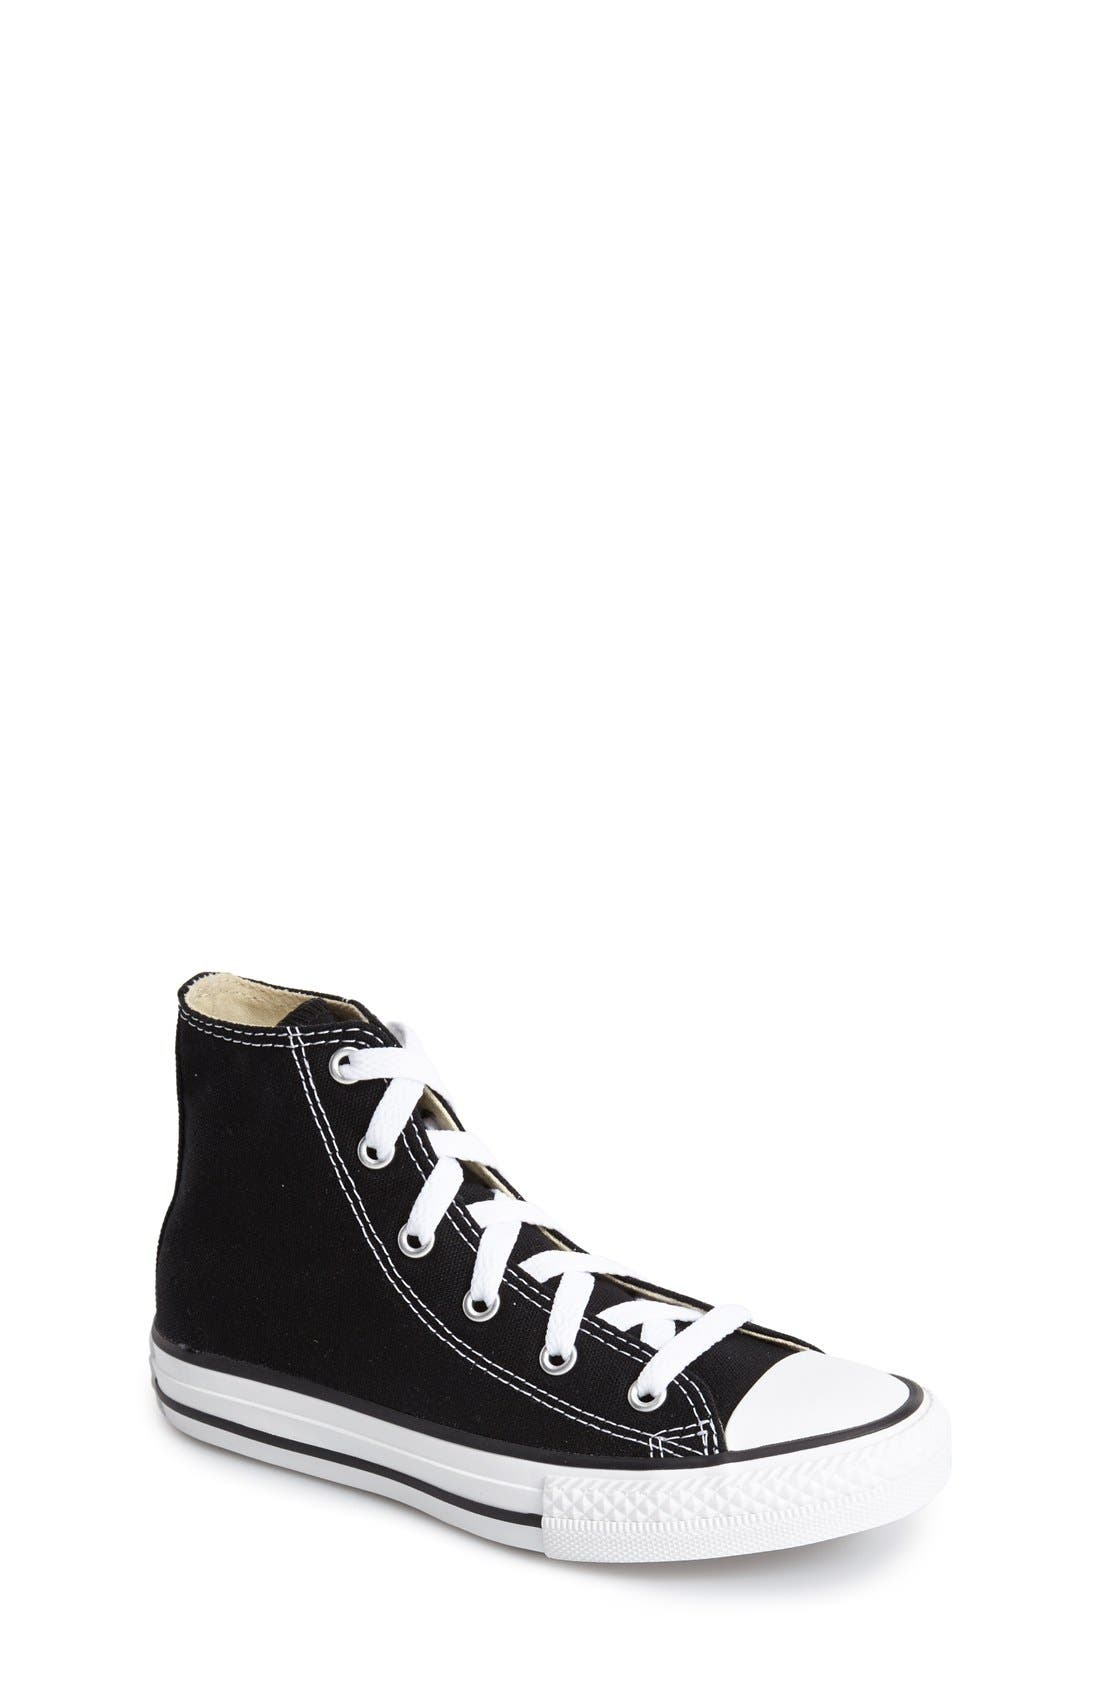 Alternate Image 1 Selected - Converse Chuck Taylor® High Top Sneaker (Toddler, Little Kid & Big Kid)